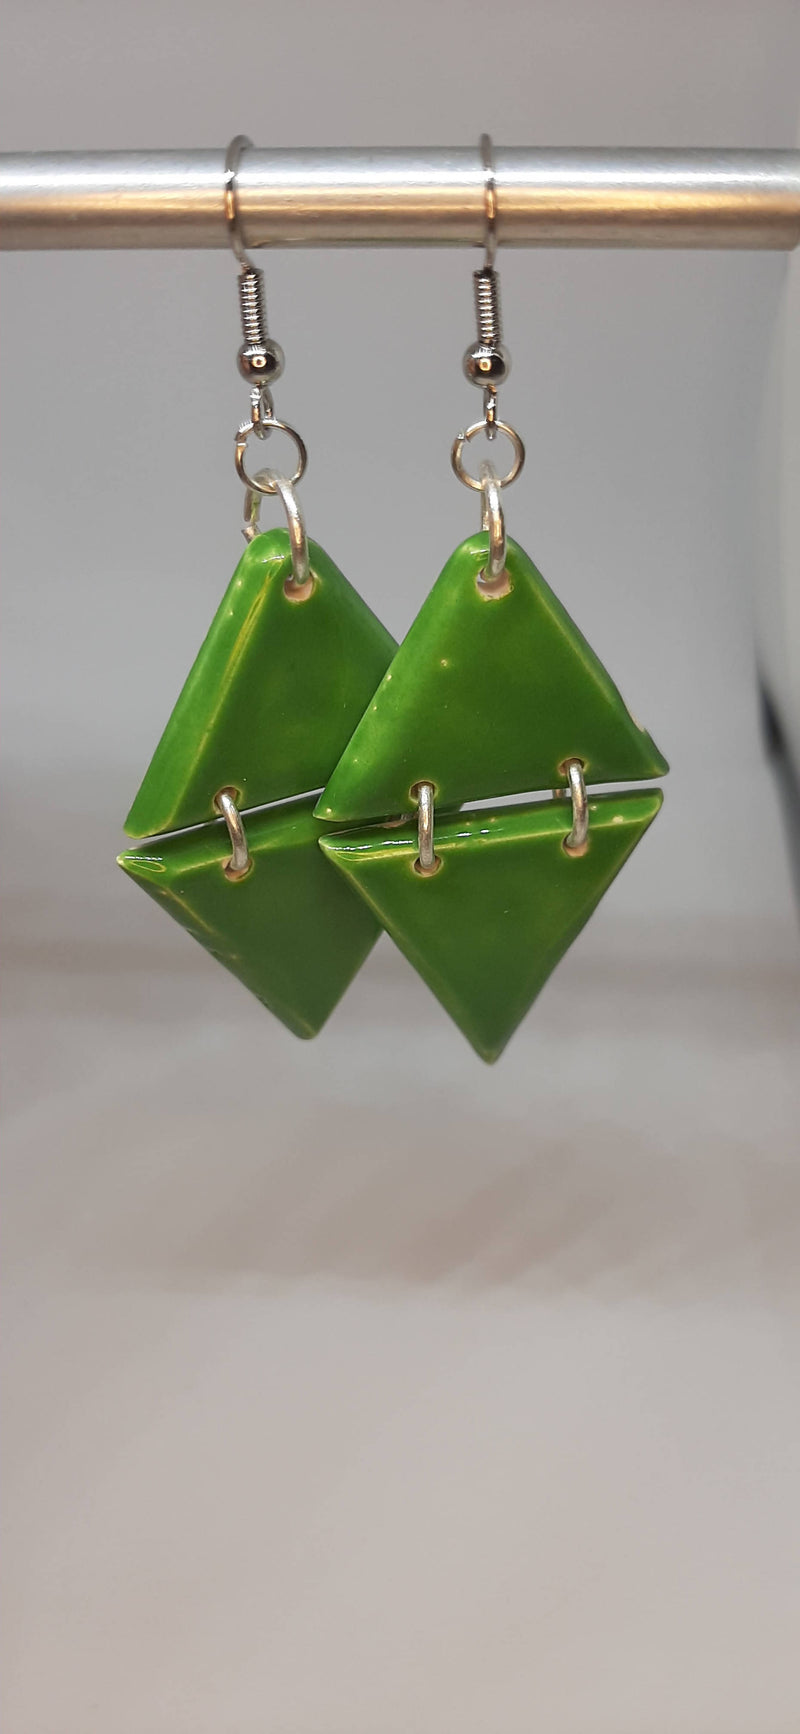 Ceramic Triangle Dangle Earrings